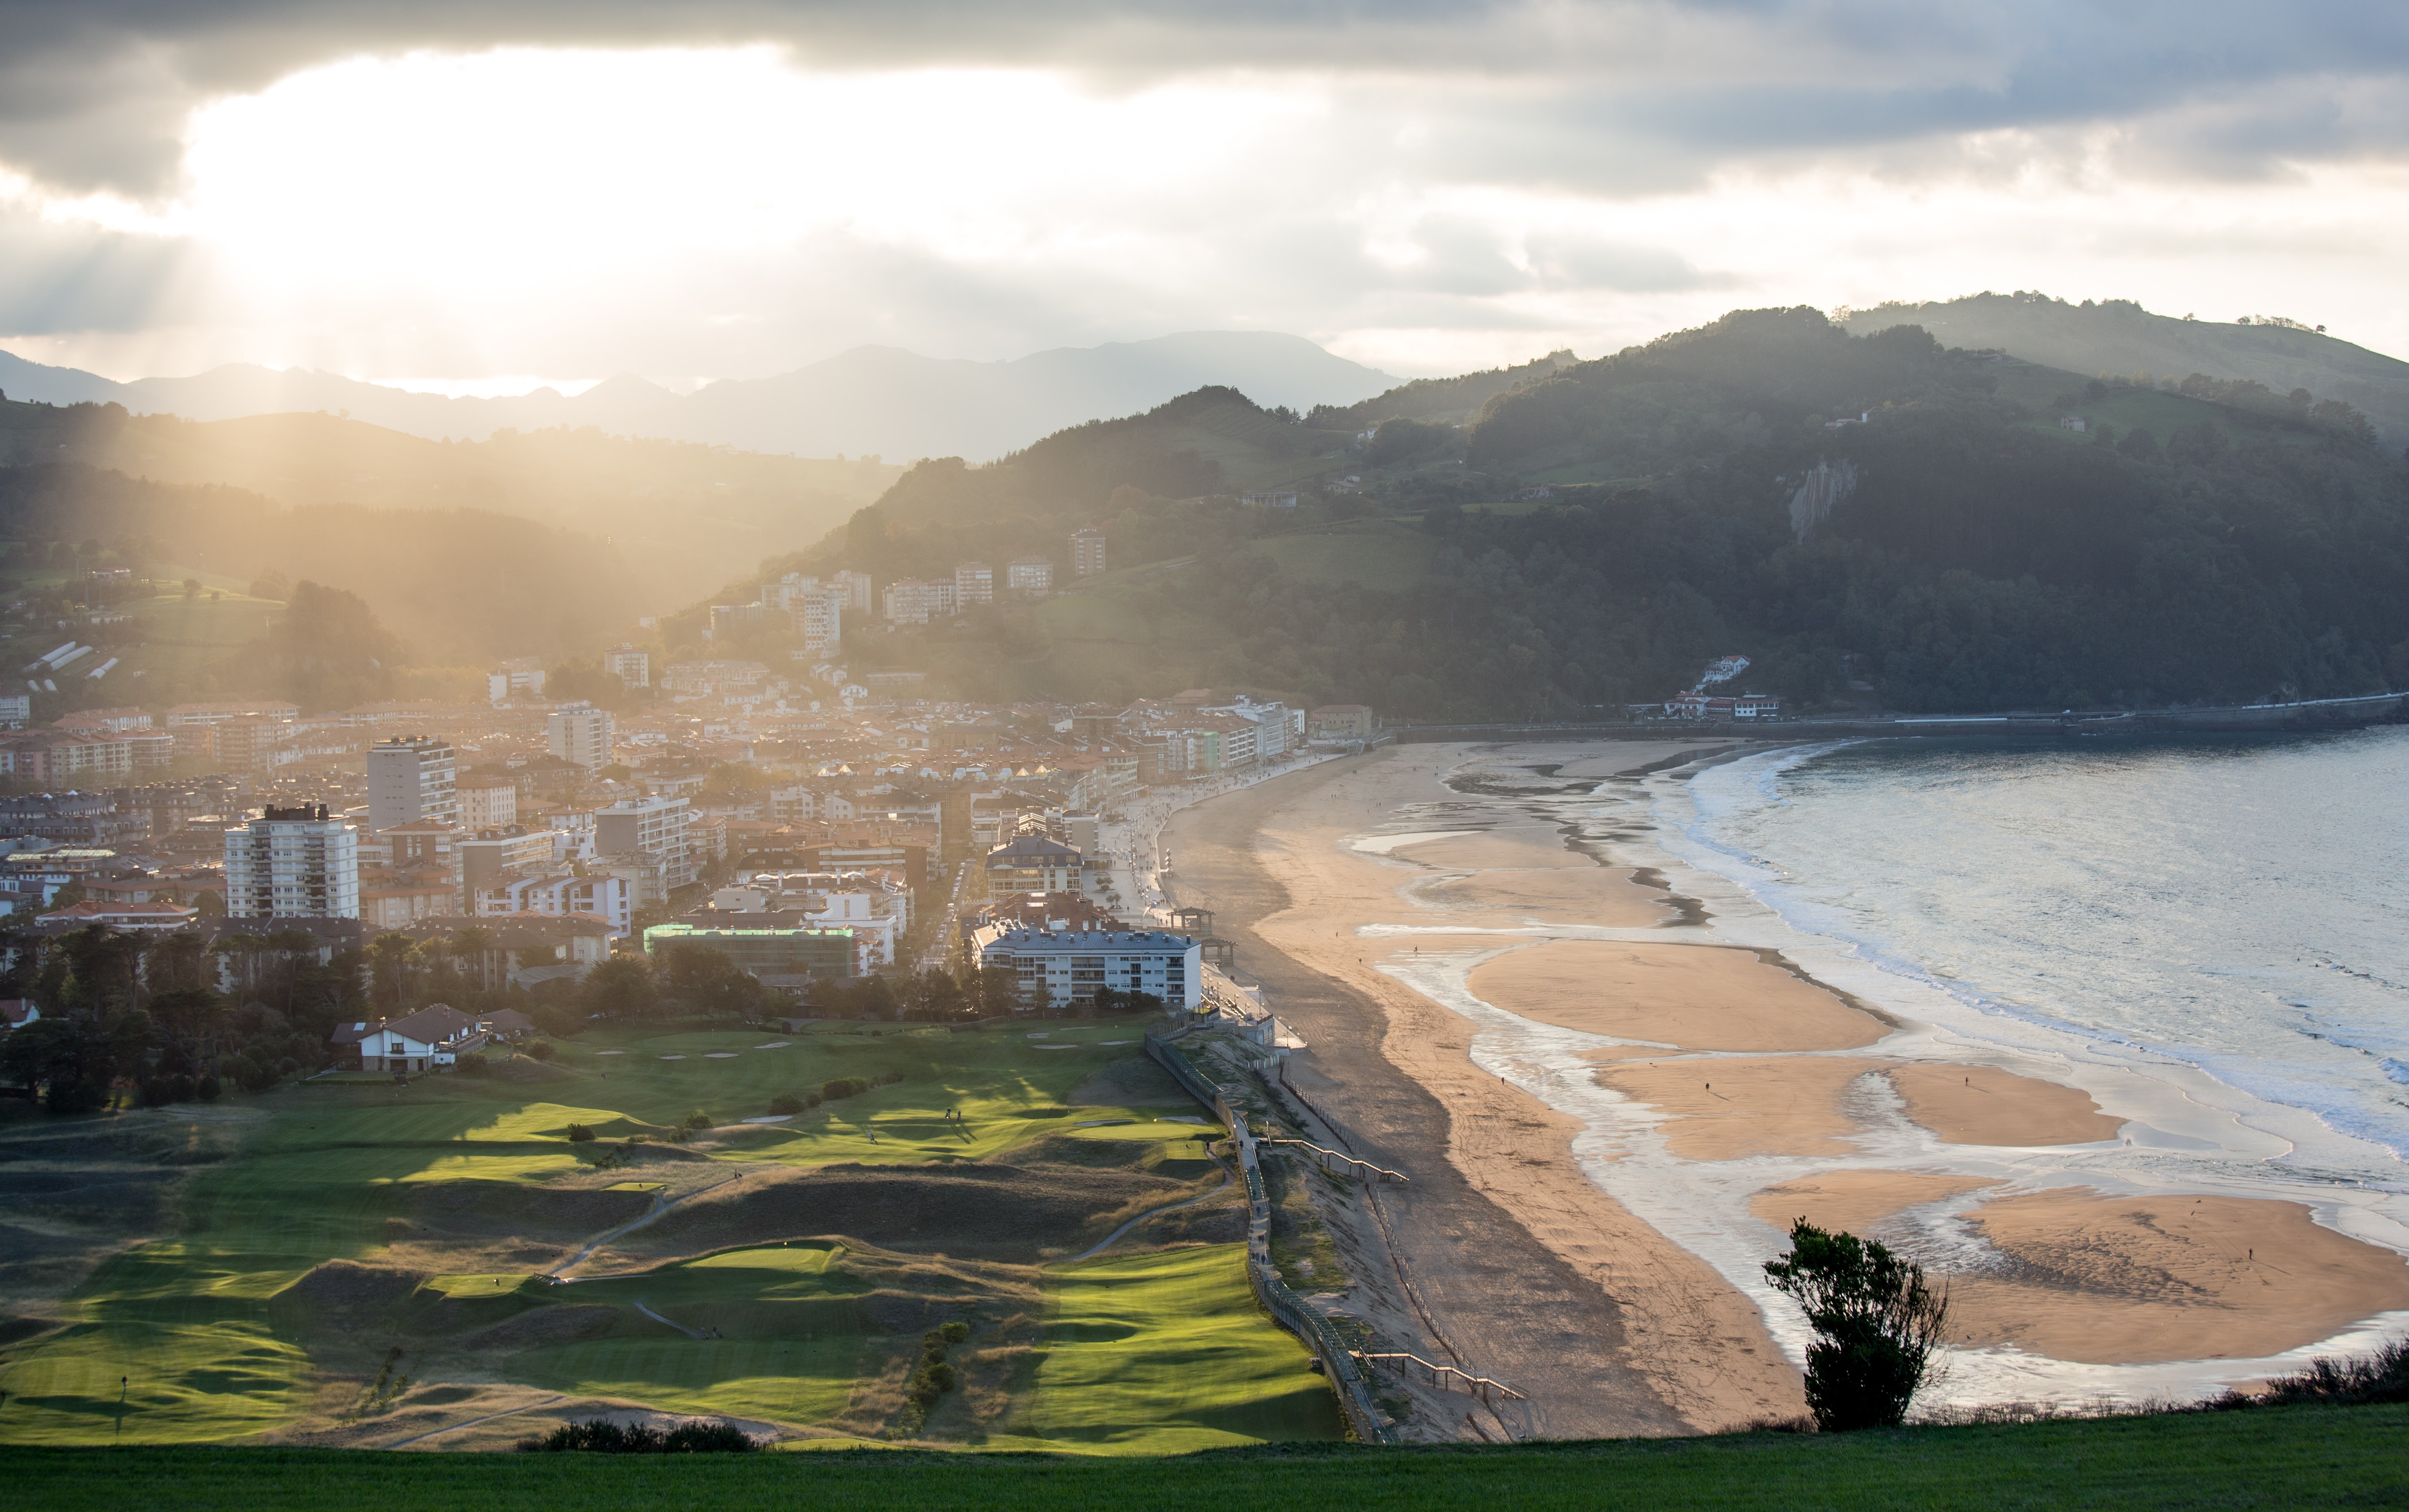 Aerial view featuring beach, settlements and surrounding landscape  of the mountains in countryside Zarautz